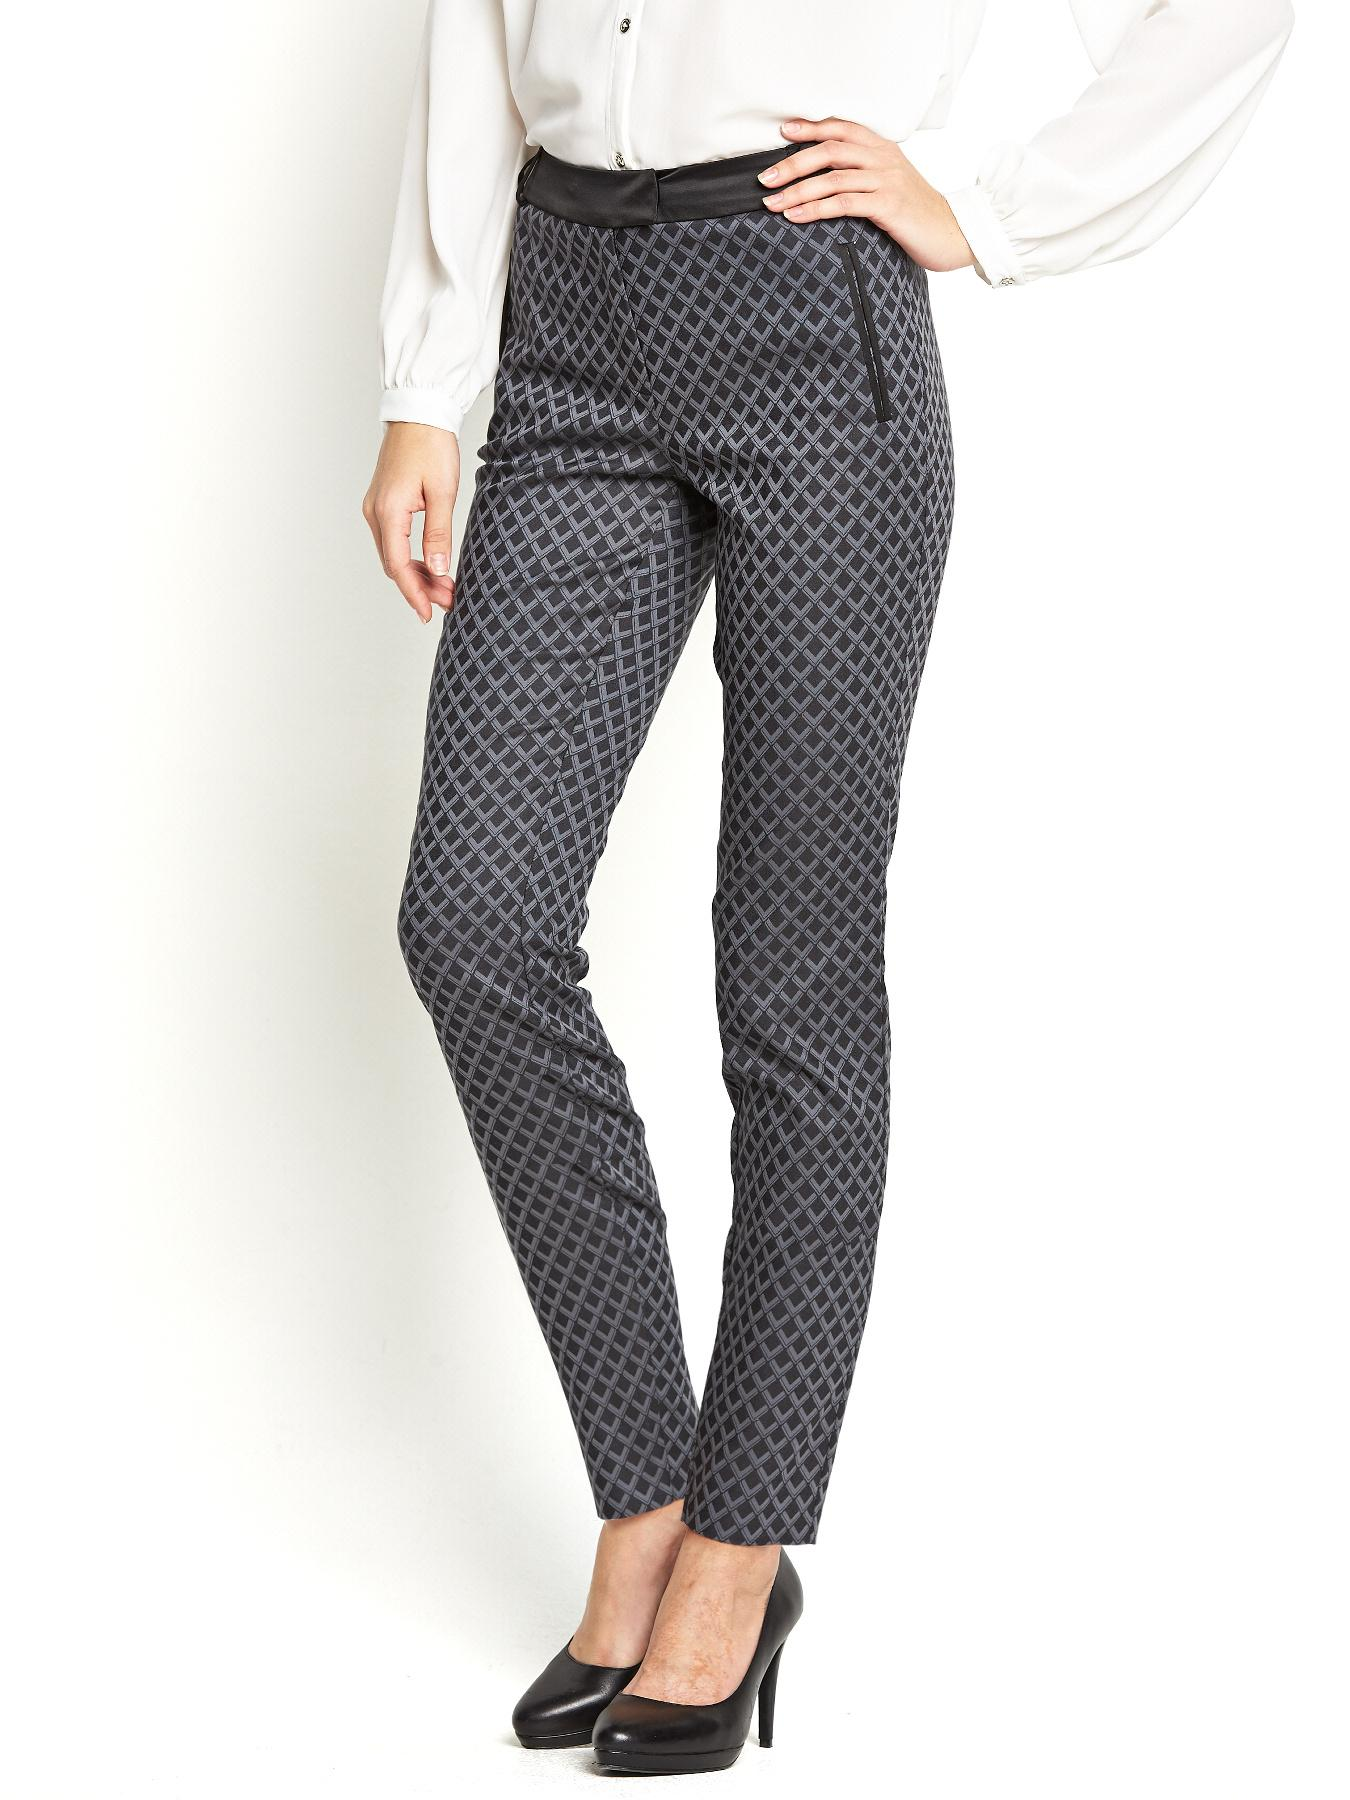 Jacquard 7/8 Crop Trousers, Black